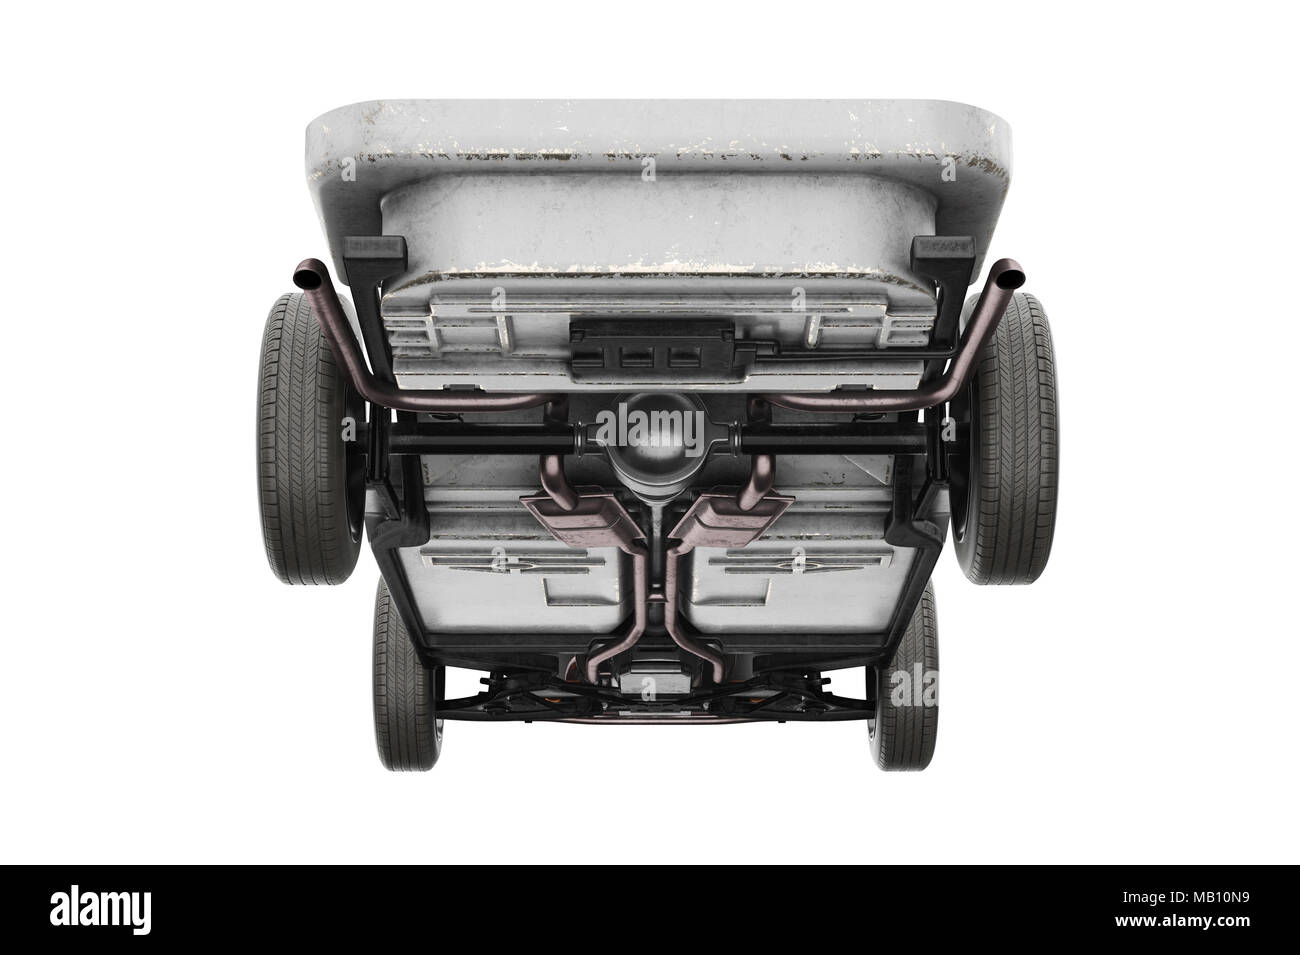 Chassis frame dirt wheel Stock Photo: 178887445 - Alamy